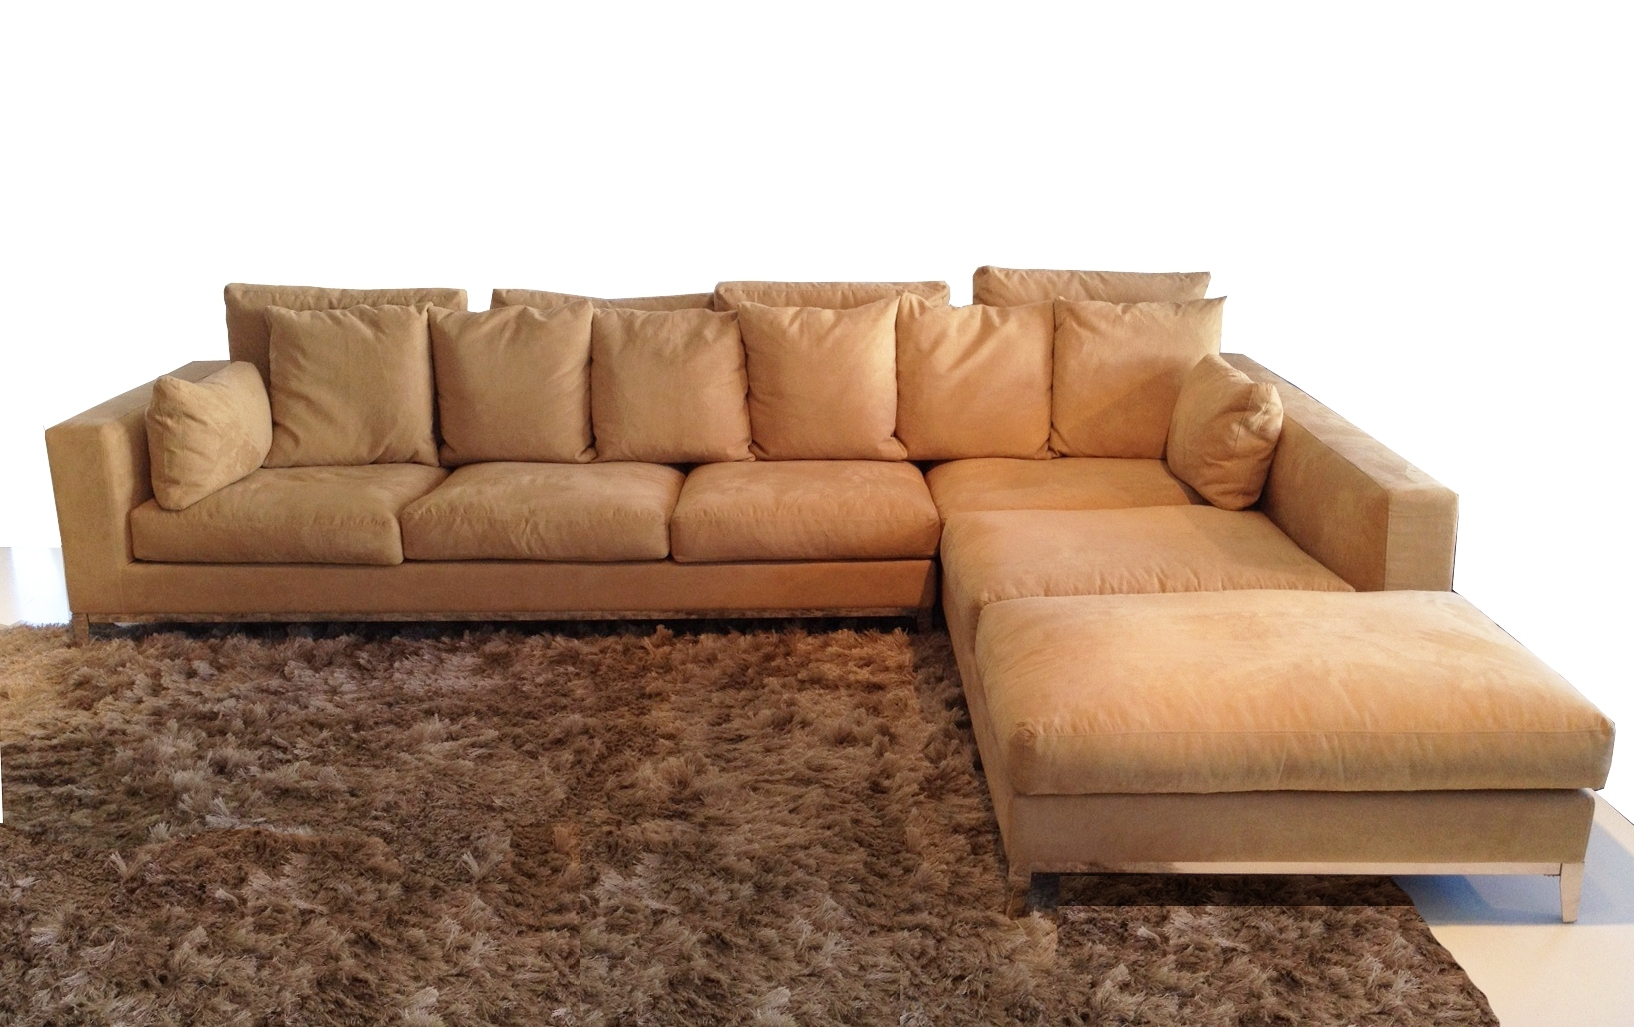 Sectional Sofas With Stainless Steel Legs (View 9 of 15)